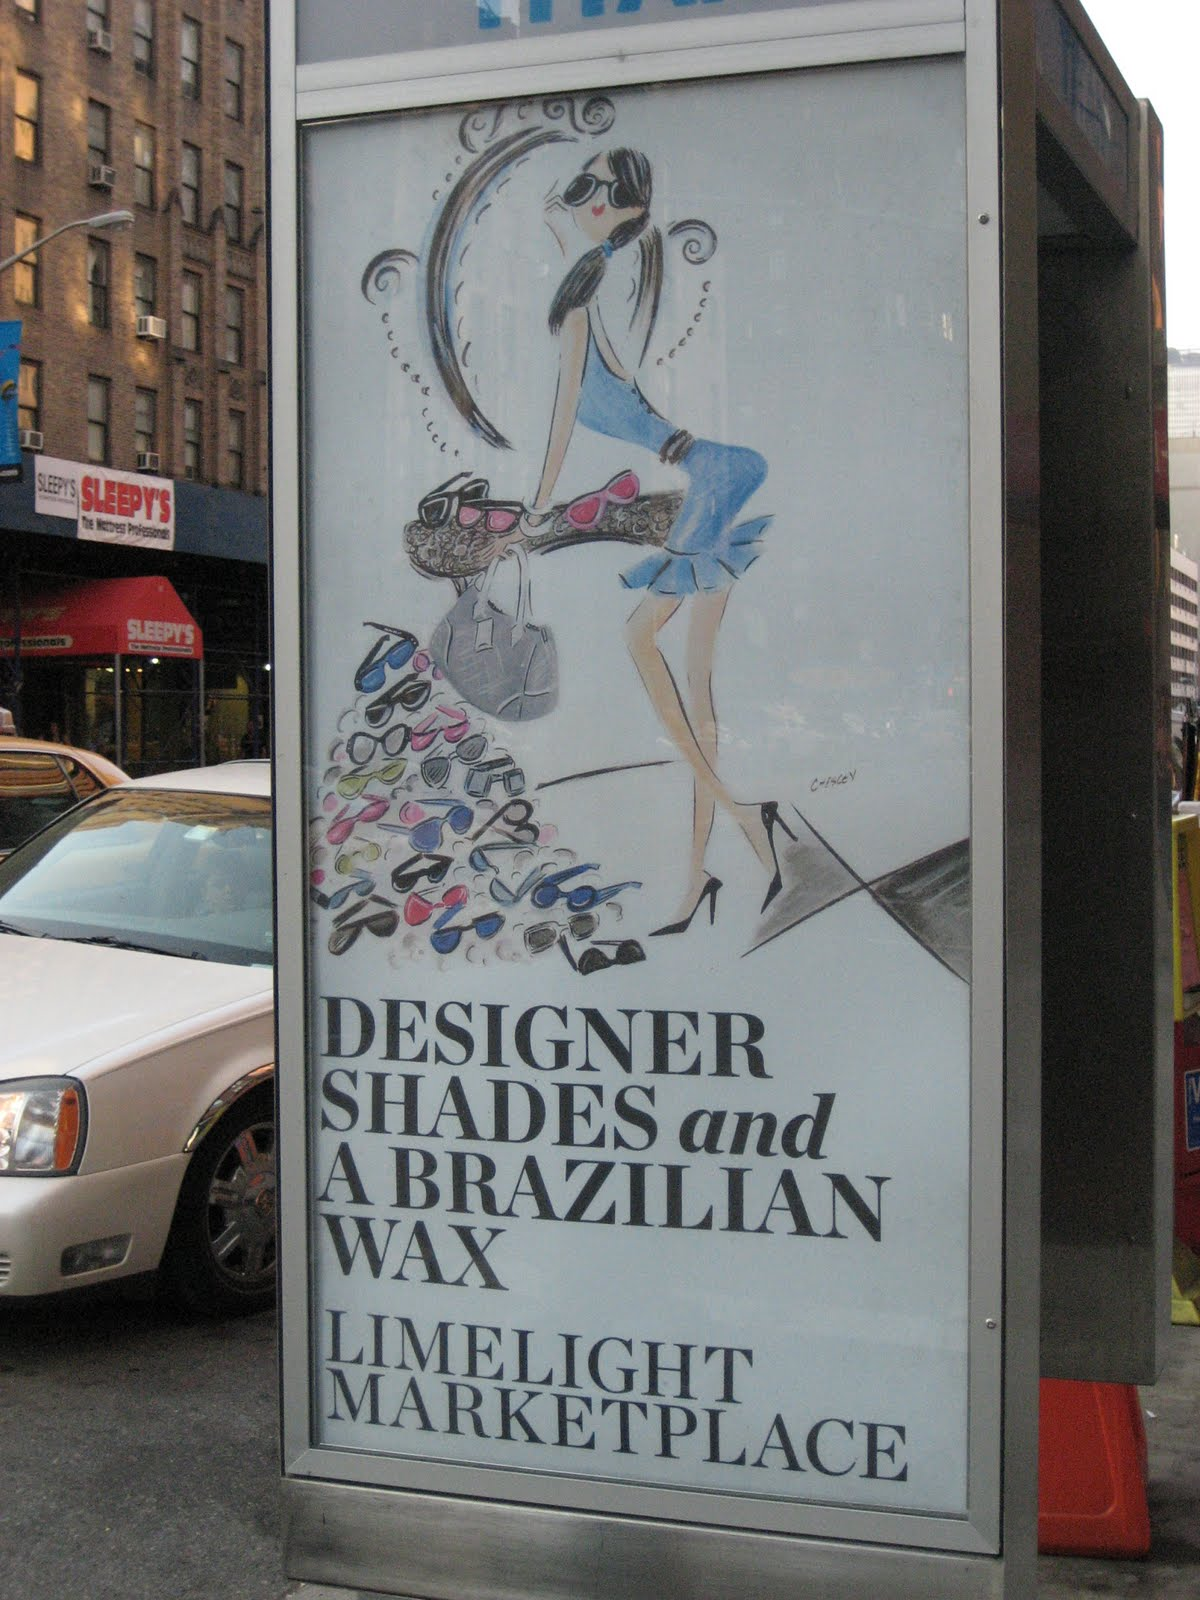 Advertisement for Limelight Marketplace in Chelsea, NYC